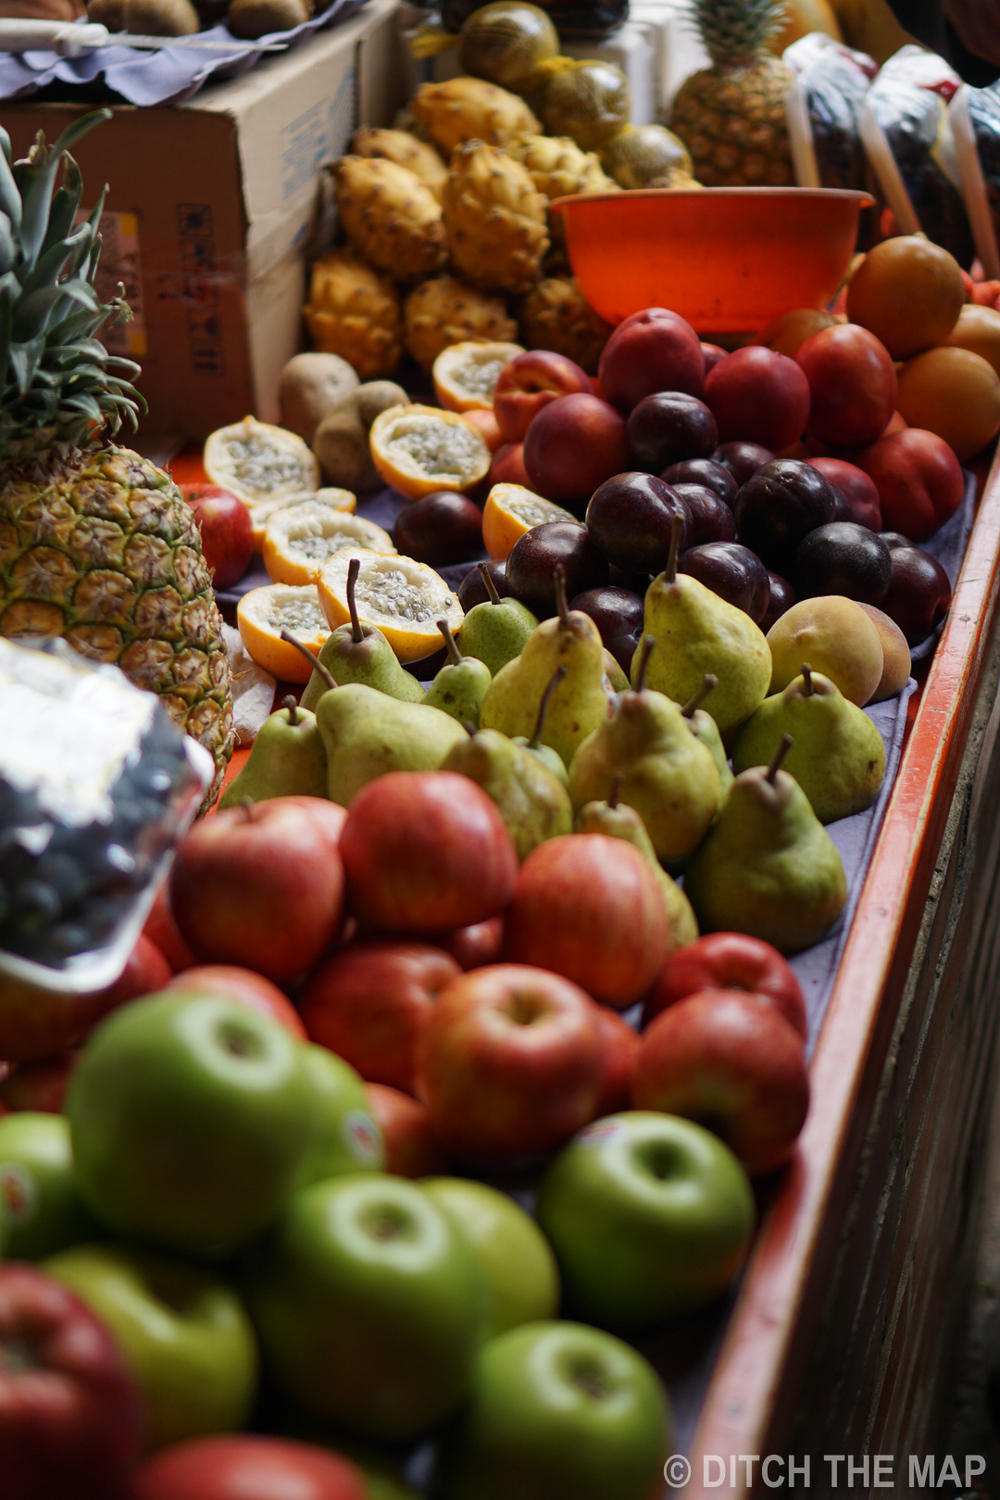 Fruit at a market in Bogota, Colombia